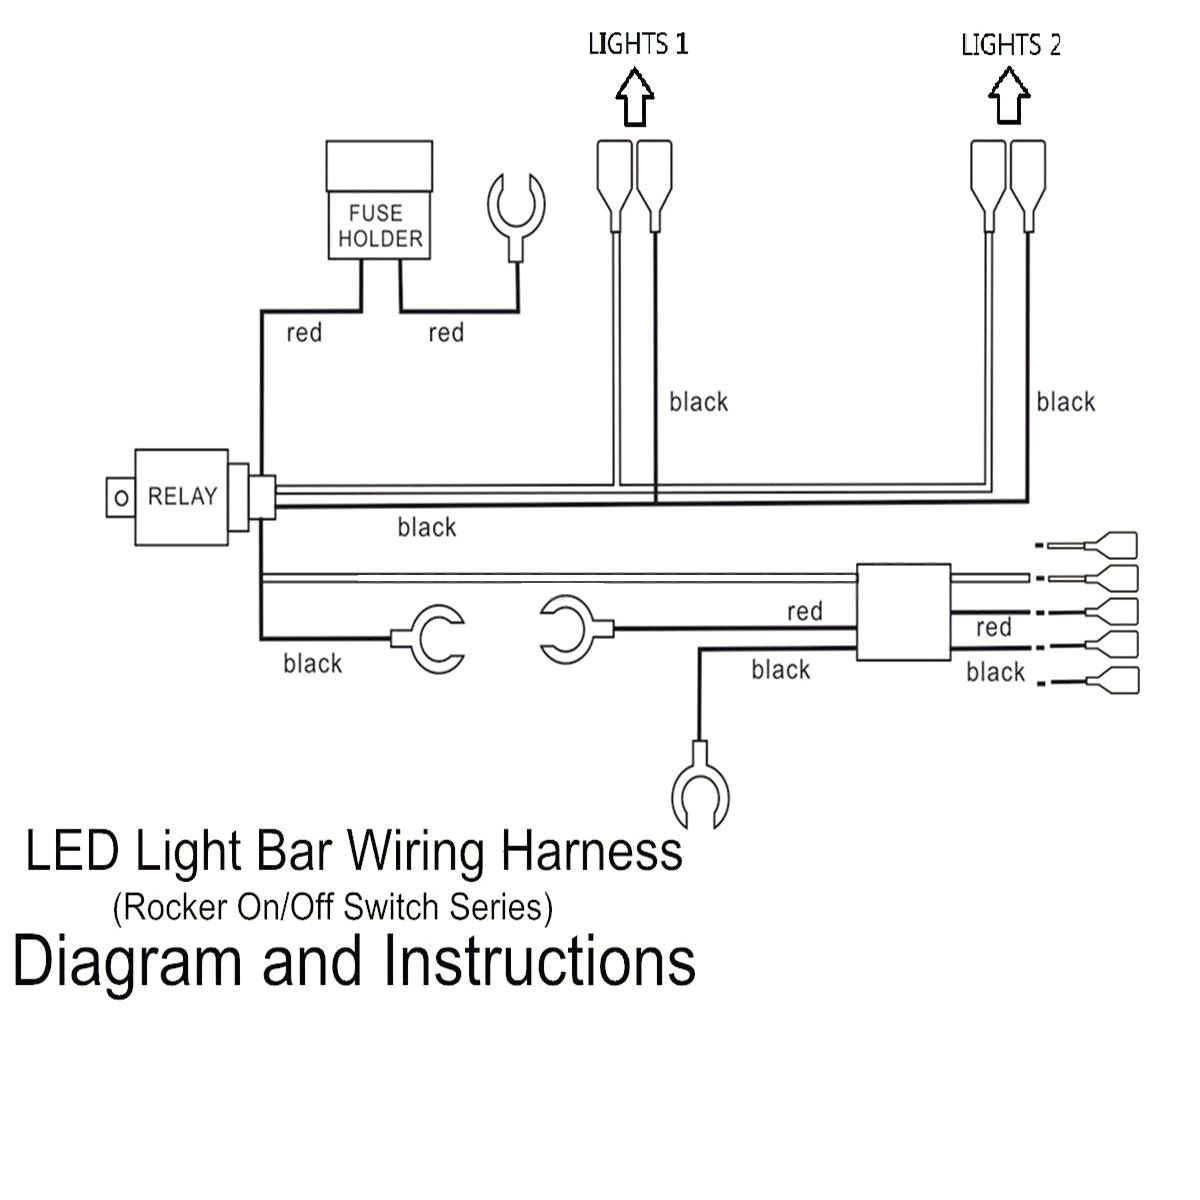 String Wire 5 Light Wiring Diagram Libraries C9 Led Pins Bar Driving Switch Relay Rocker In5